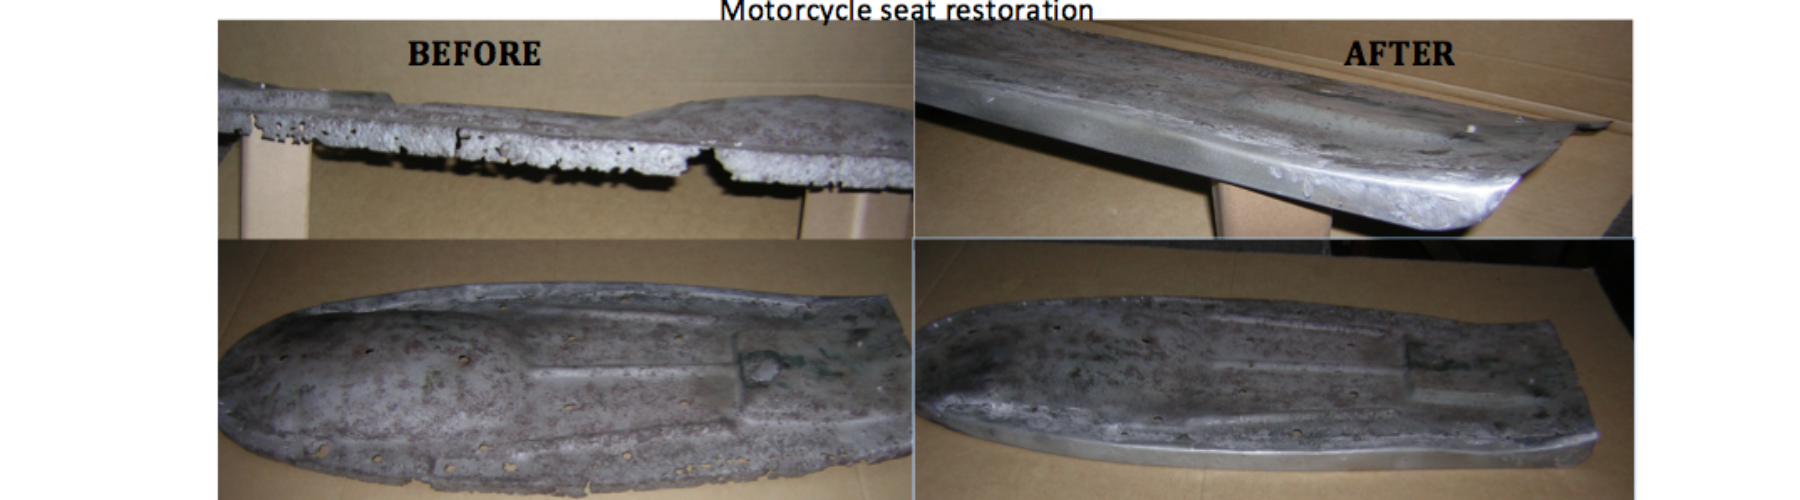 Aton Engineering motorcycle seat restoration